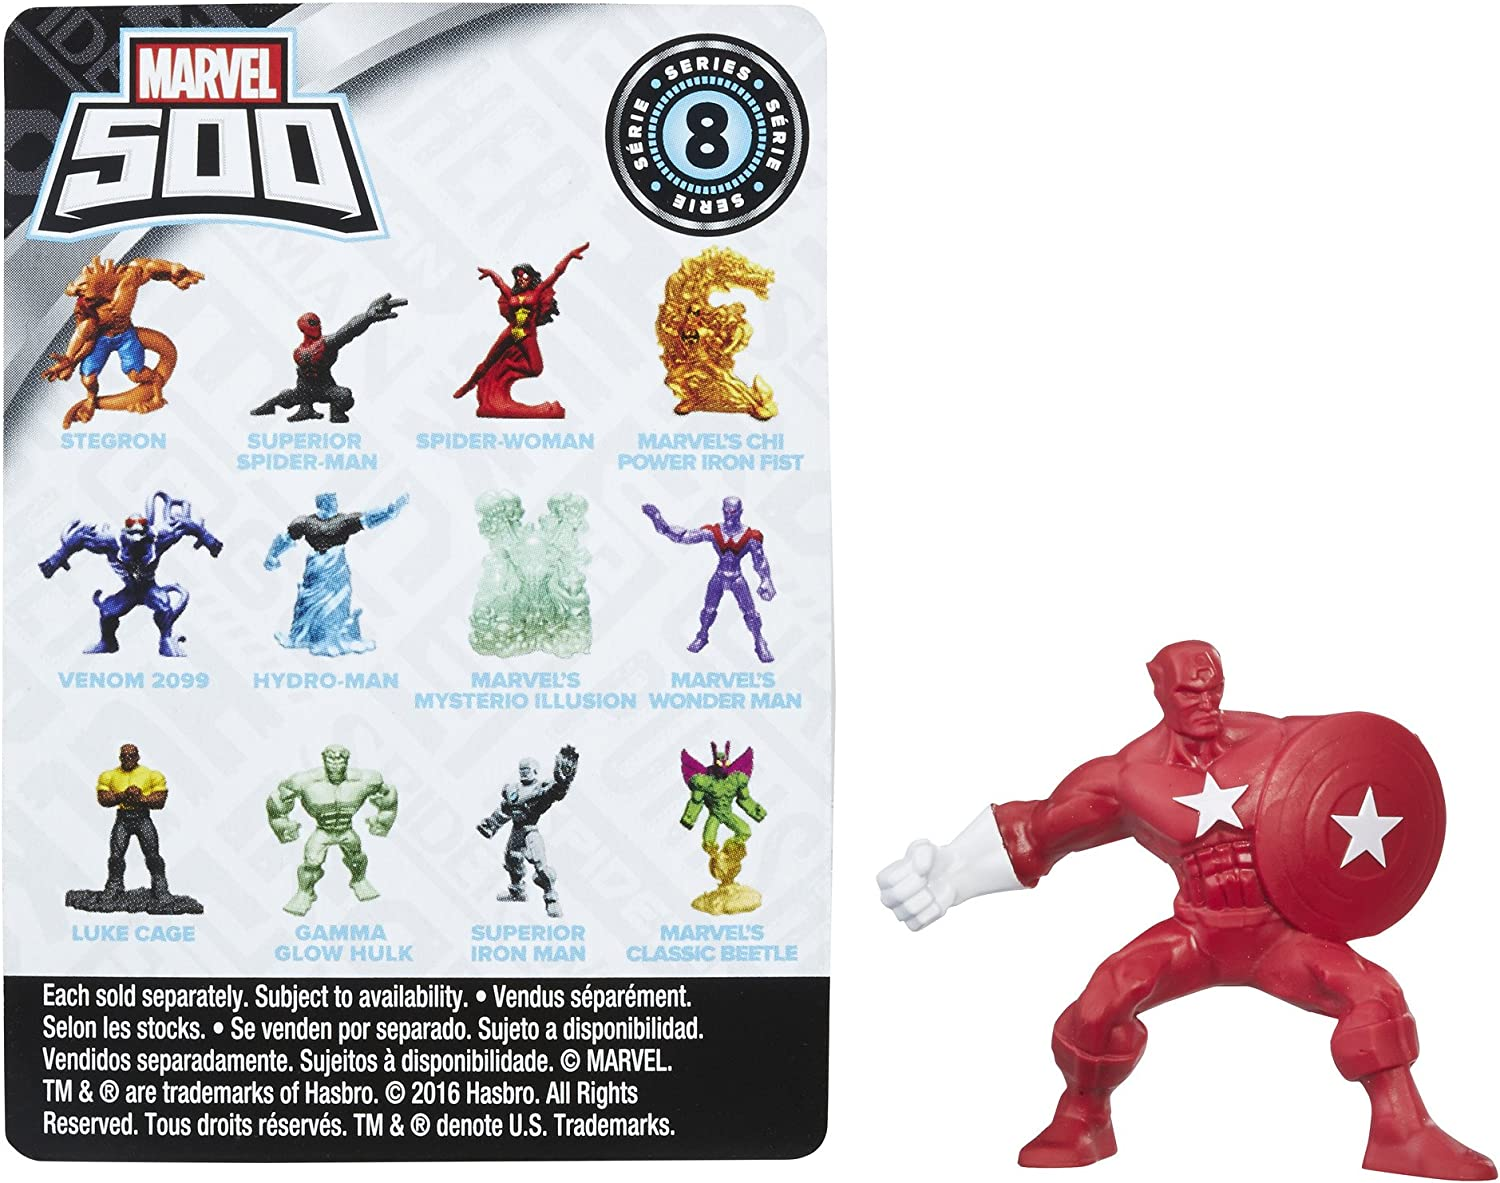 Marvel 500 Series 8 MARVEL/'S CLASSIC BEETLE Figure